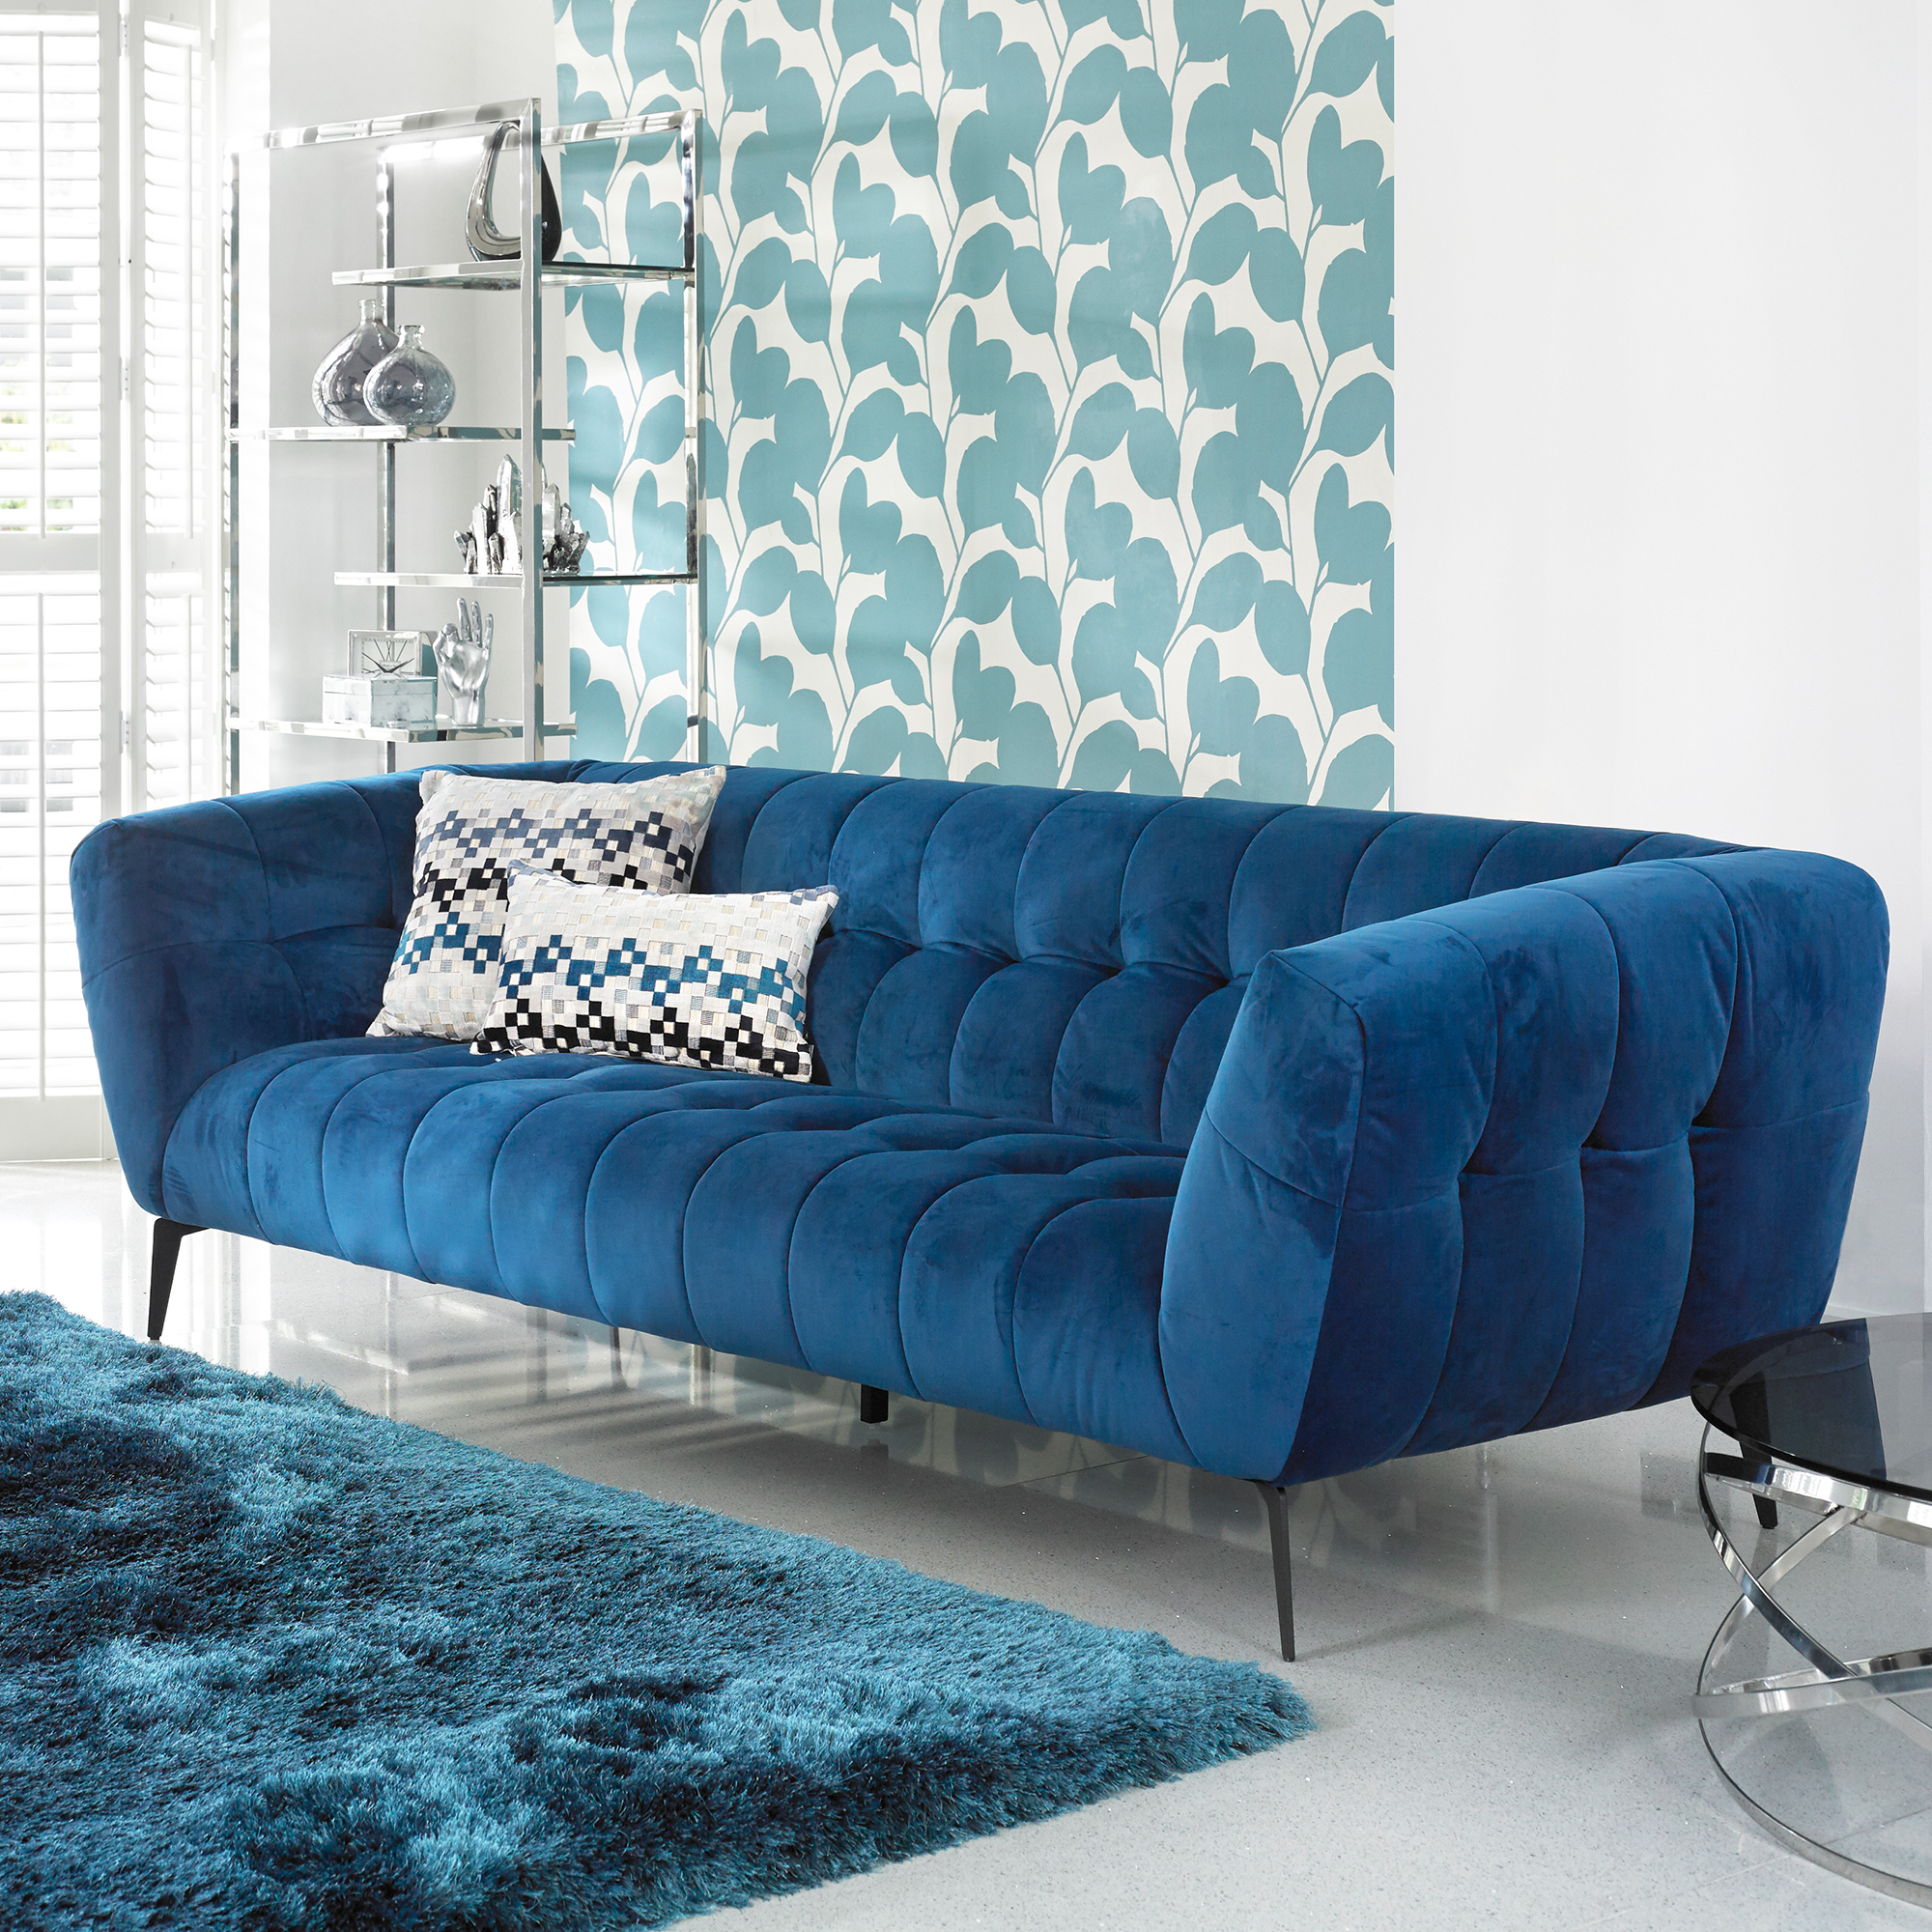 Vincenzo - 3 Seat Sofa In Grade BSF20 Fabric TX1226 Teal